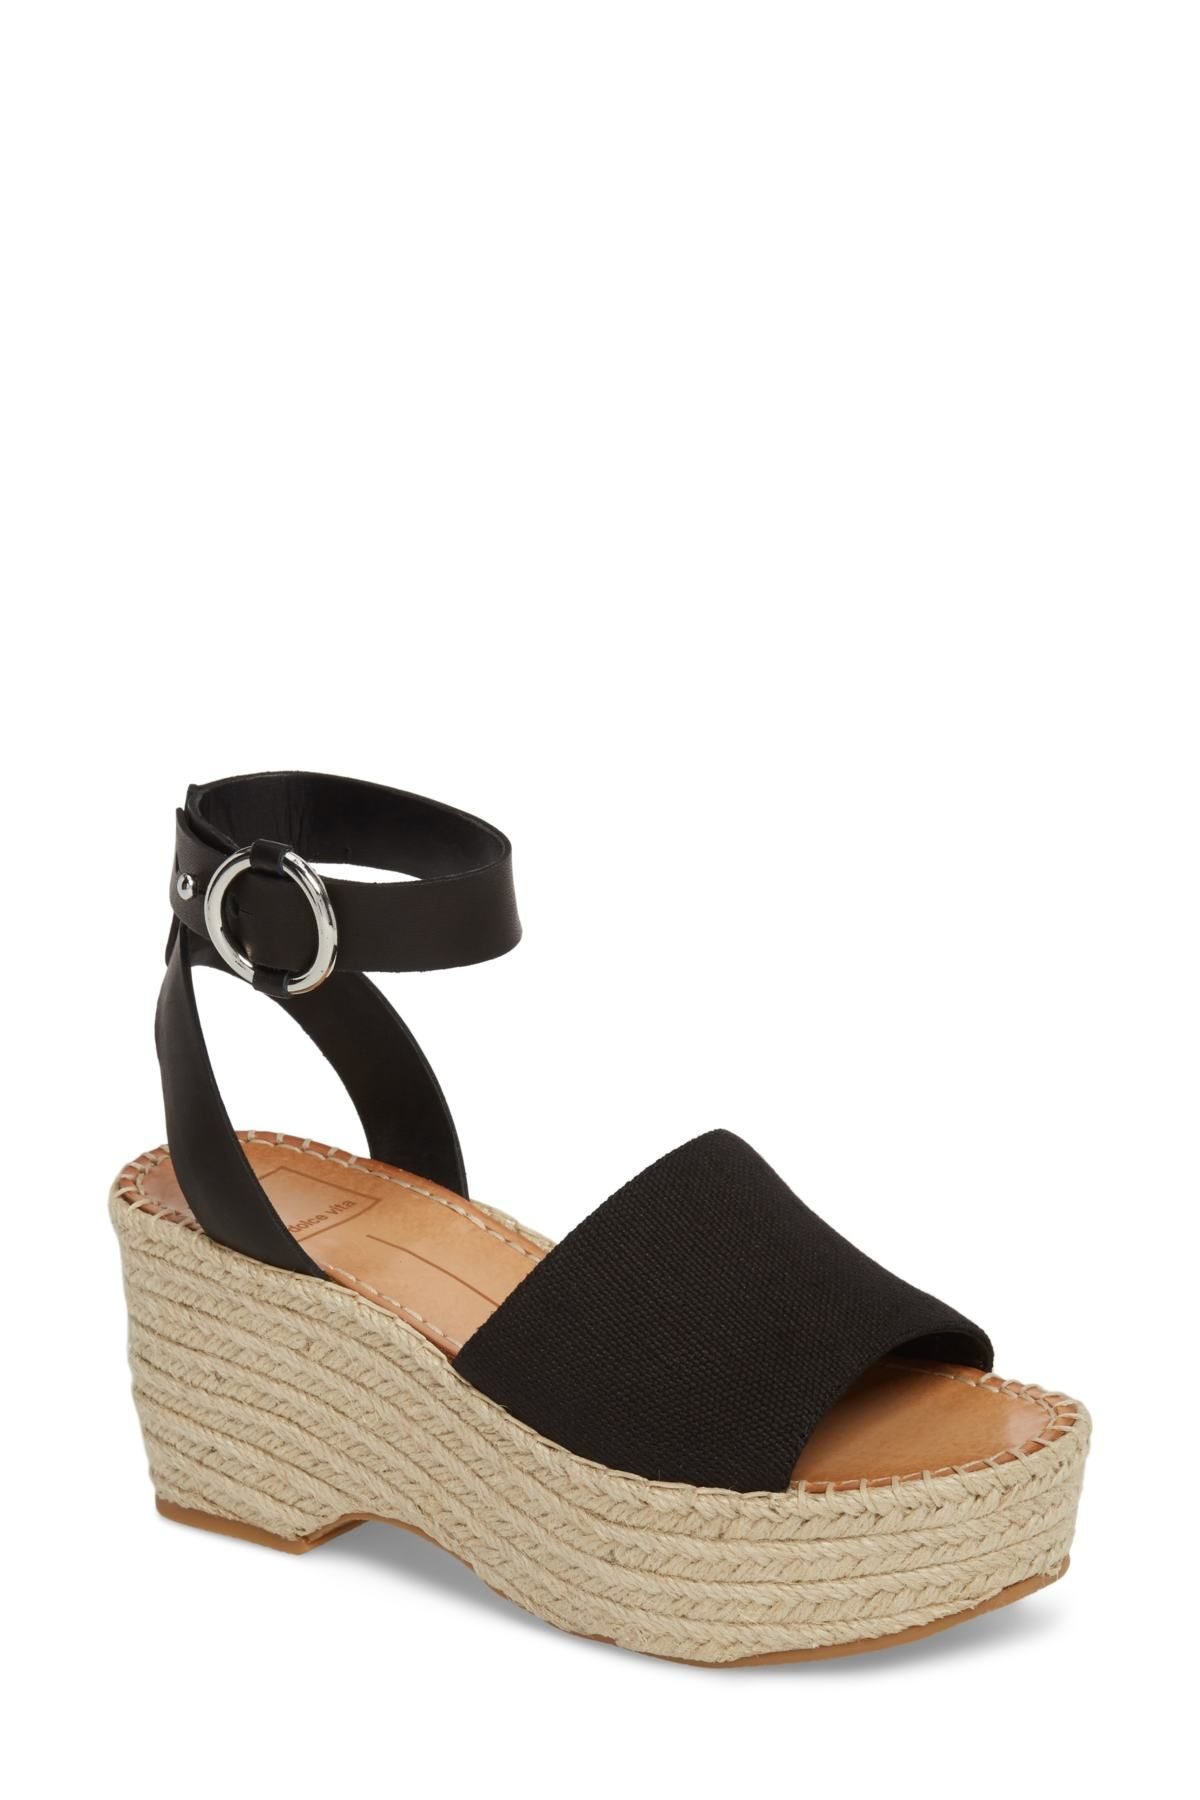 15916508f3d3 Dolce Vita - Lesly Espadrille Platform Sandal (Women) is now -49-42% off.  Free Shipping on orders over  100.